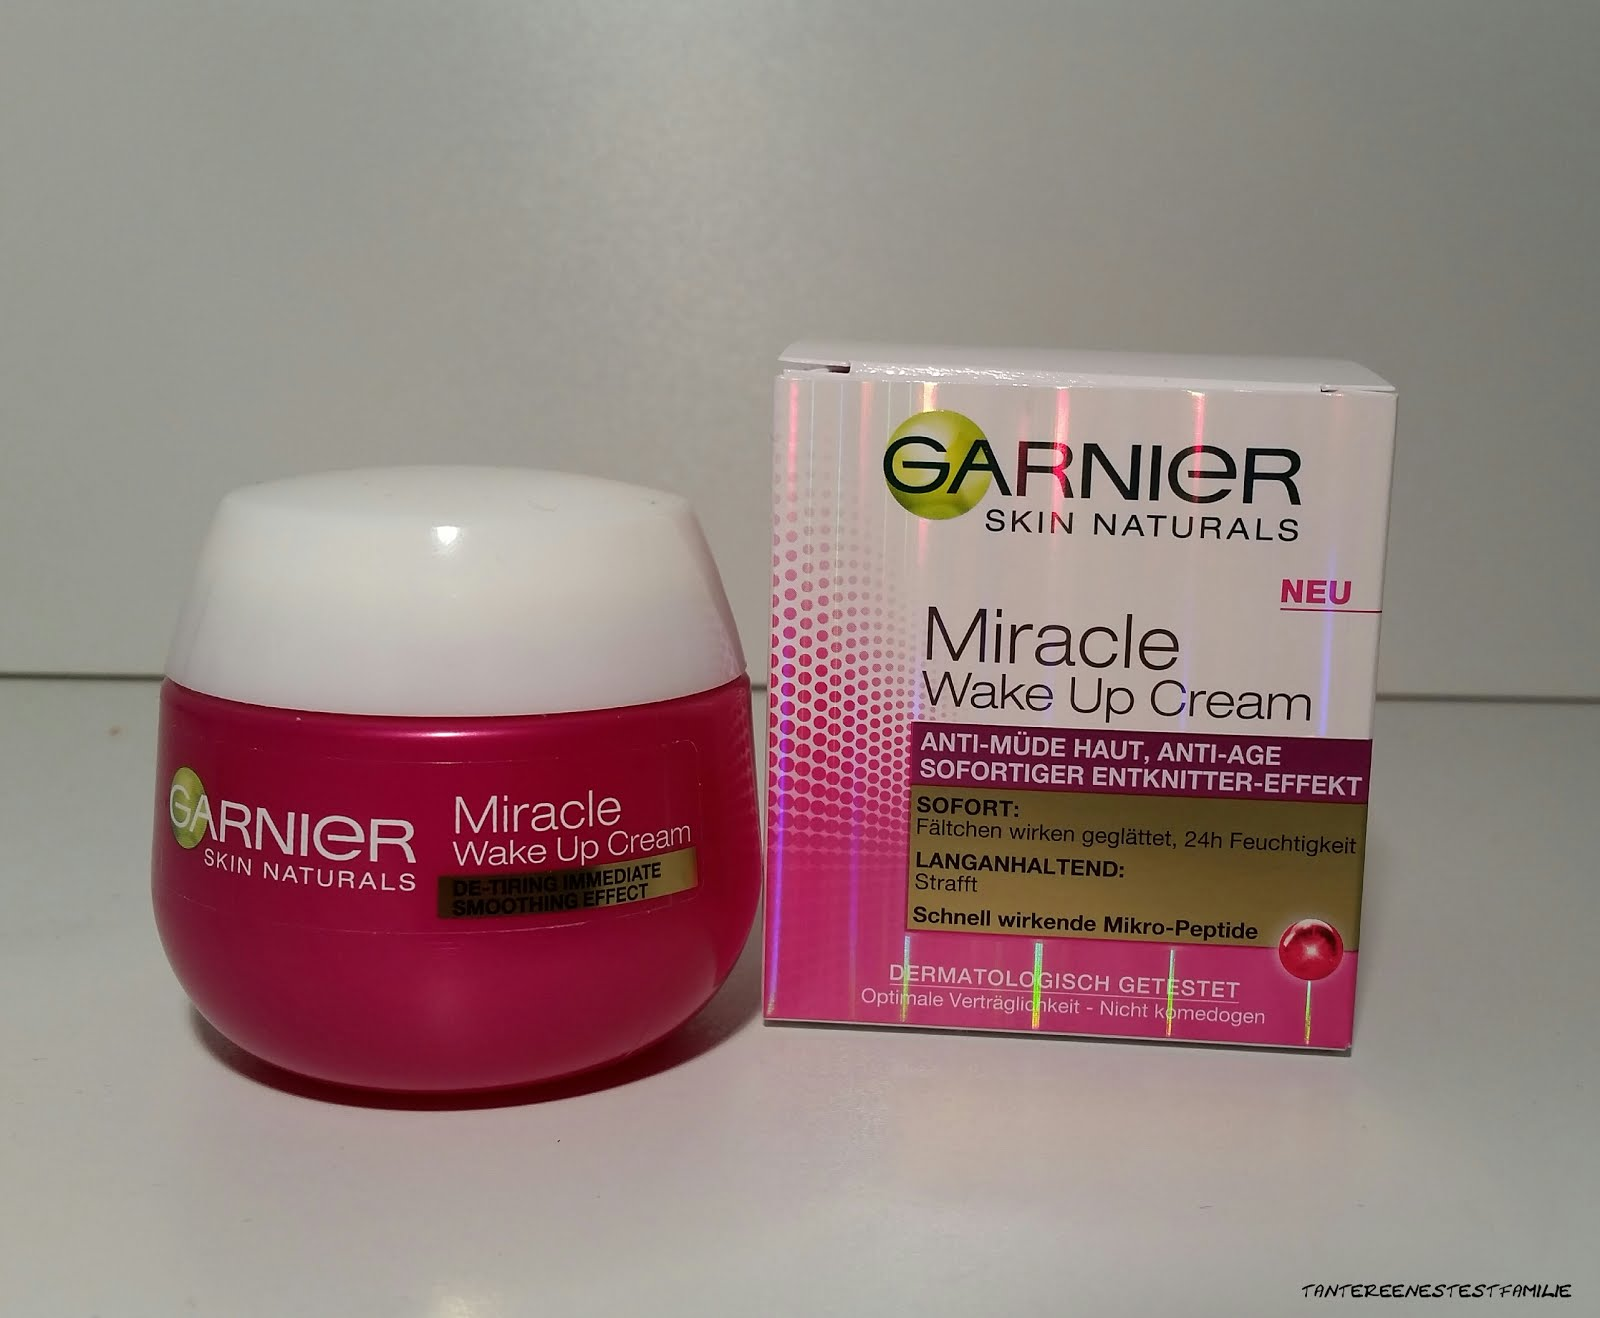 Garnier Miracle Wake Up Cream Tante Reenes Testfamilie